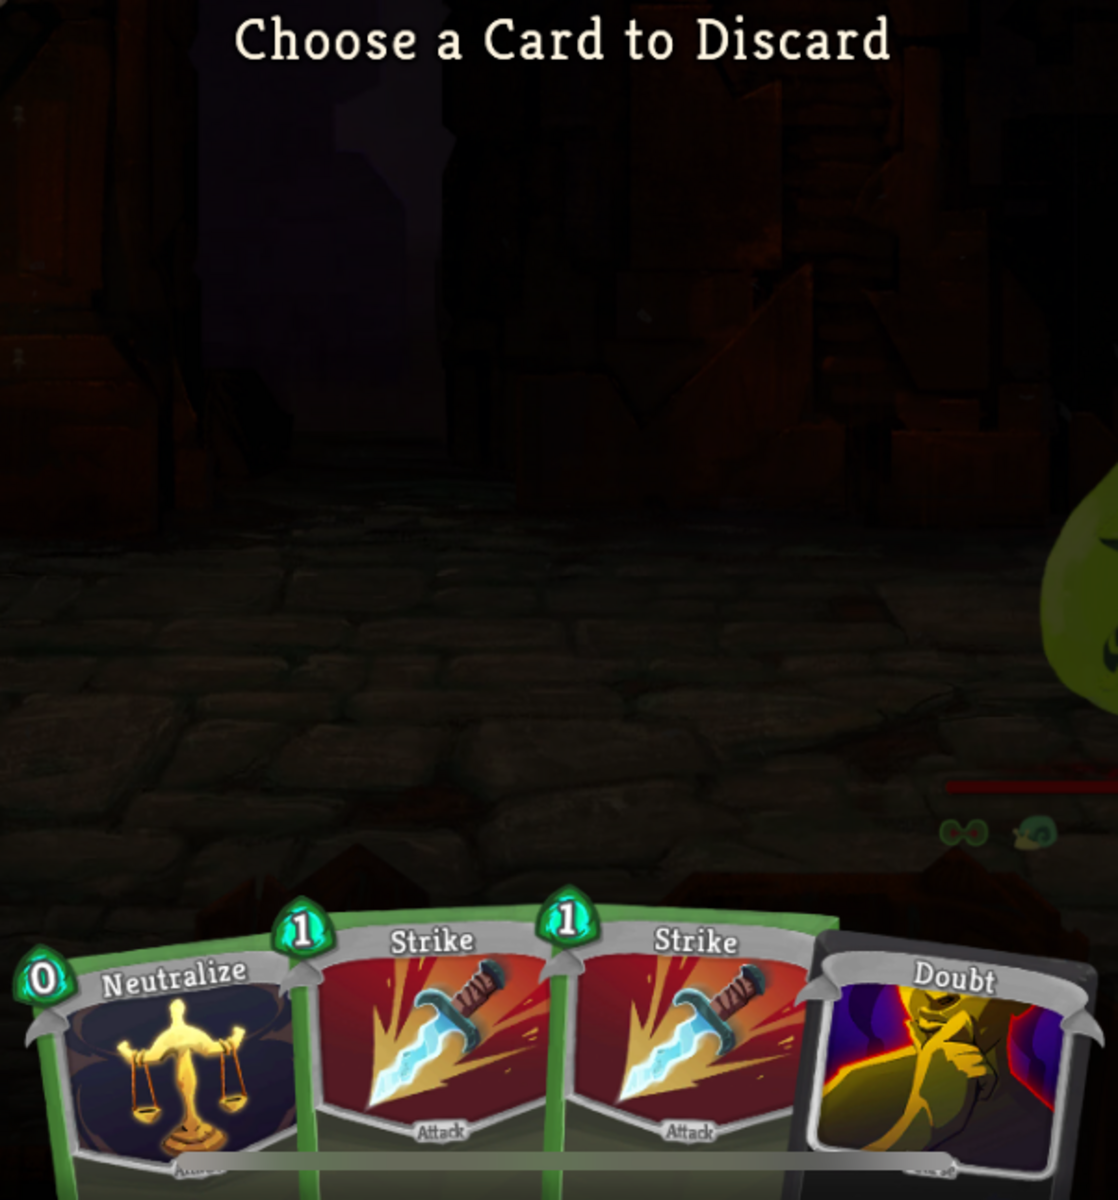 I can pick a curse card to discard.